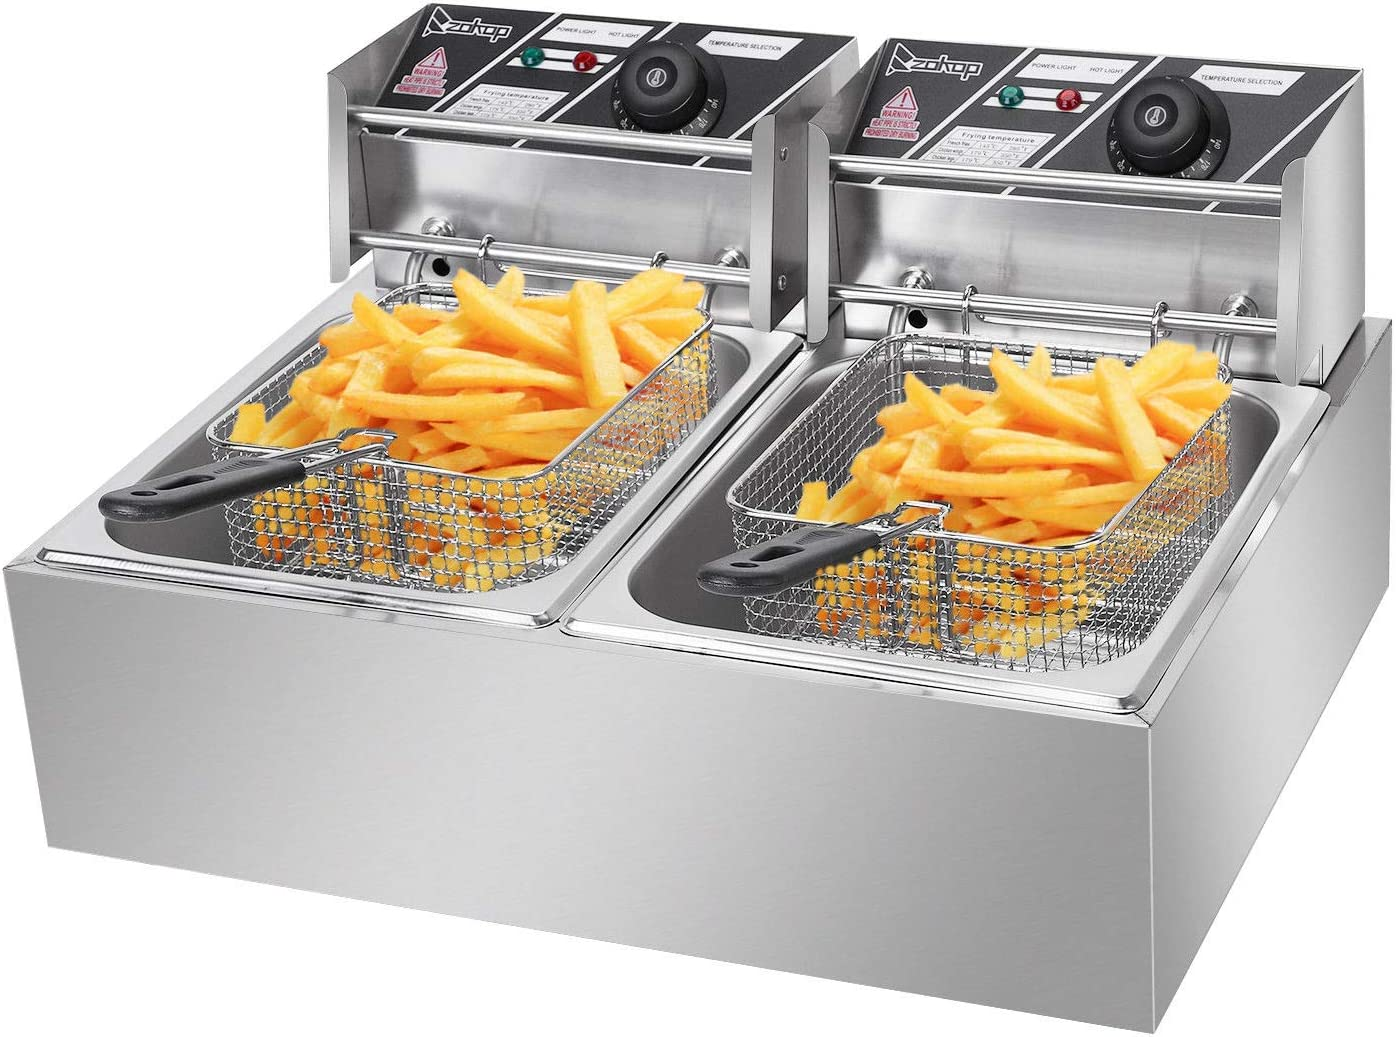 Deep Fryer Dual Tank Electric Countertop 5000W Commercial for both Home and Restaurant 12 Liter Cooking